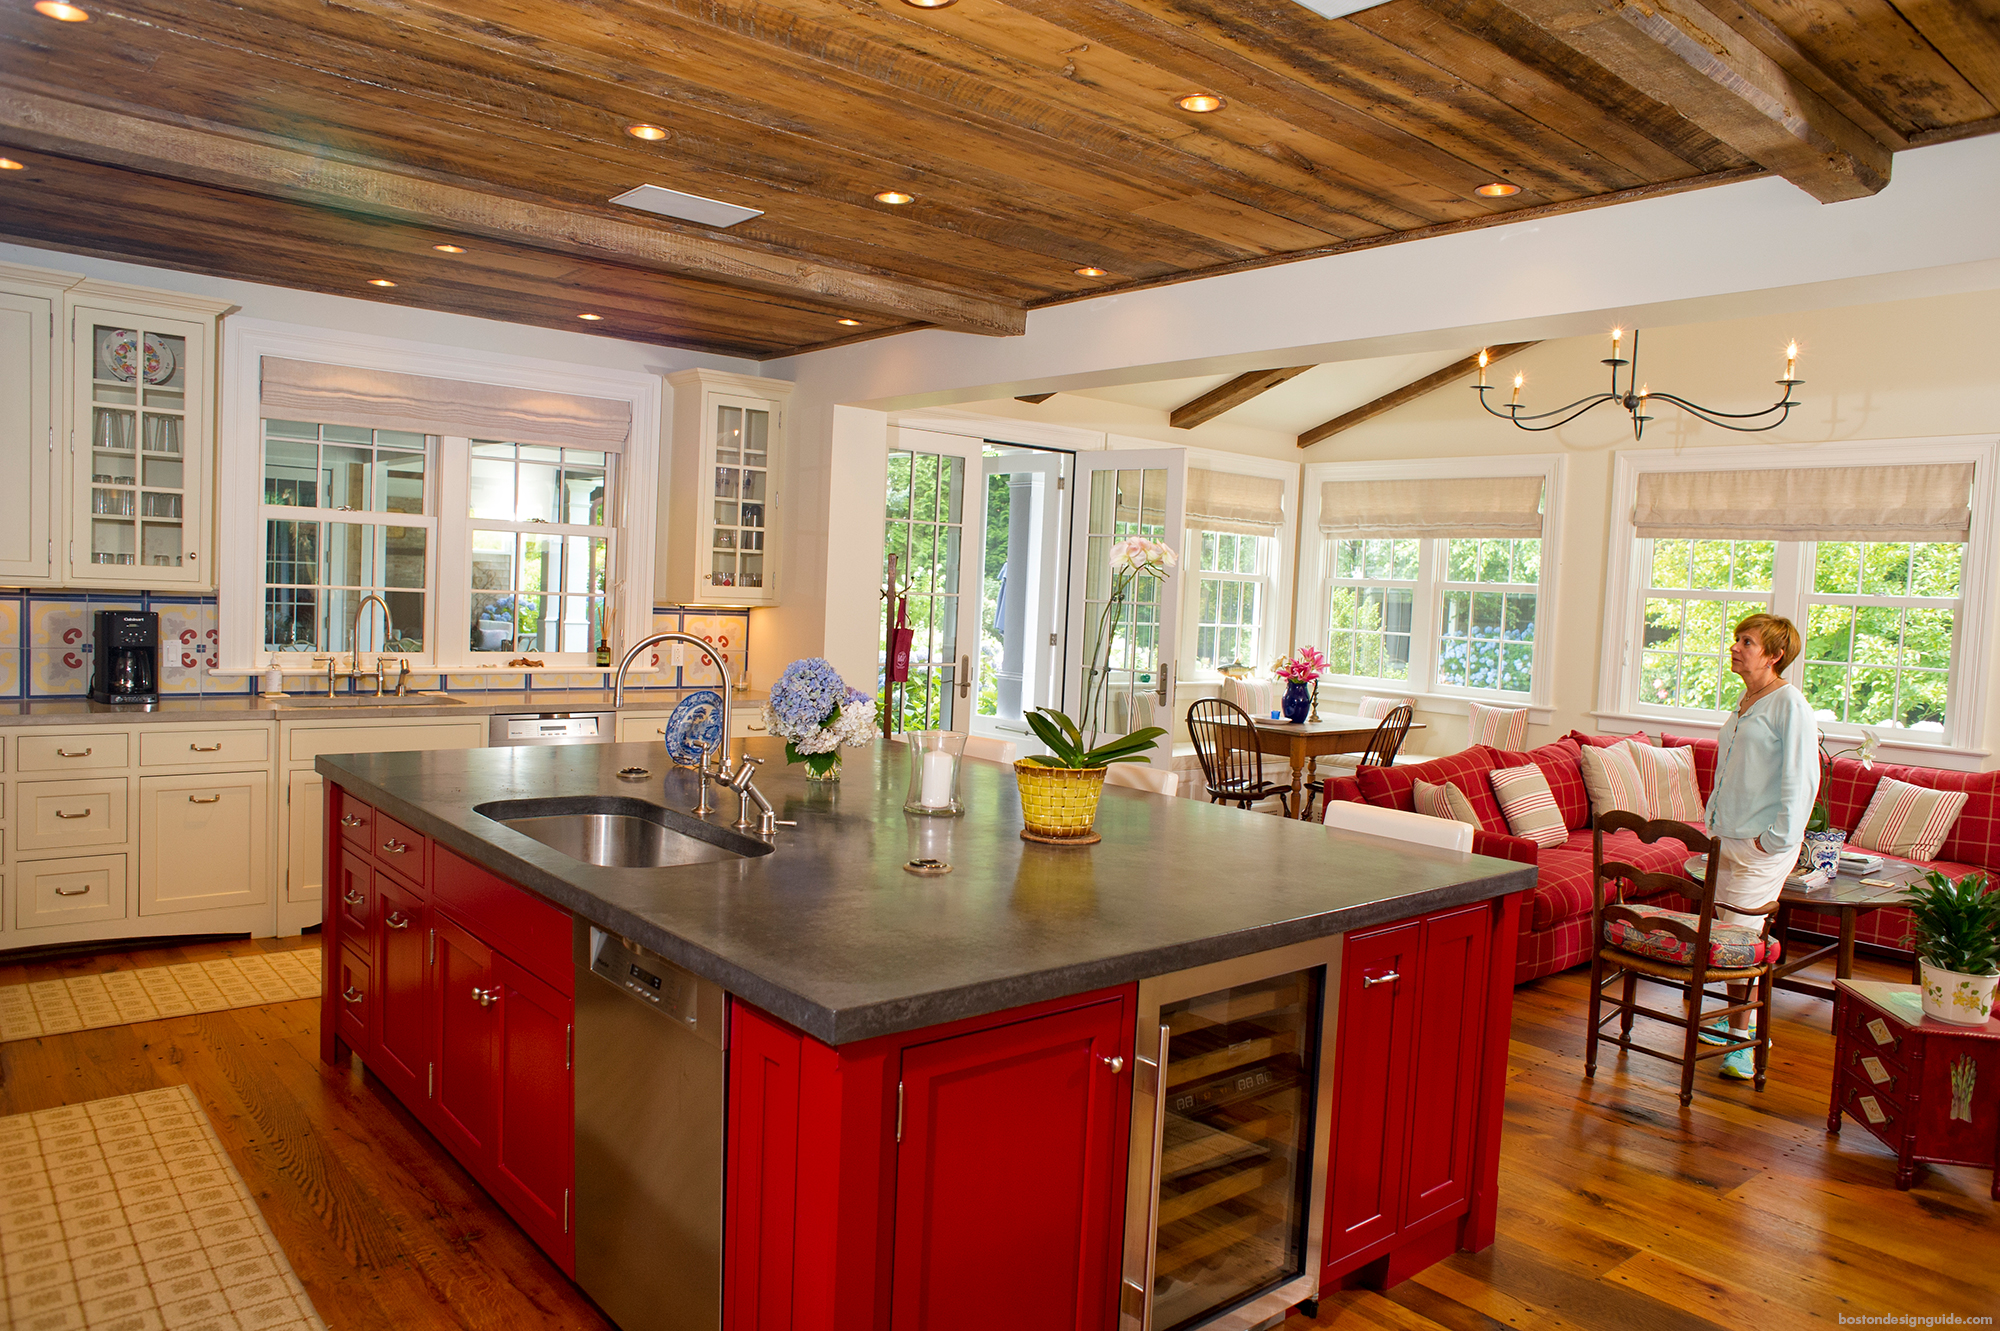 Kitchens on Martha's Vineyard